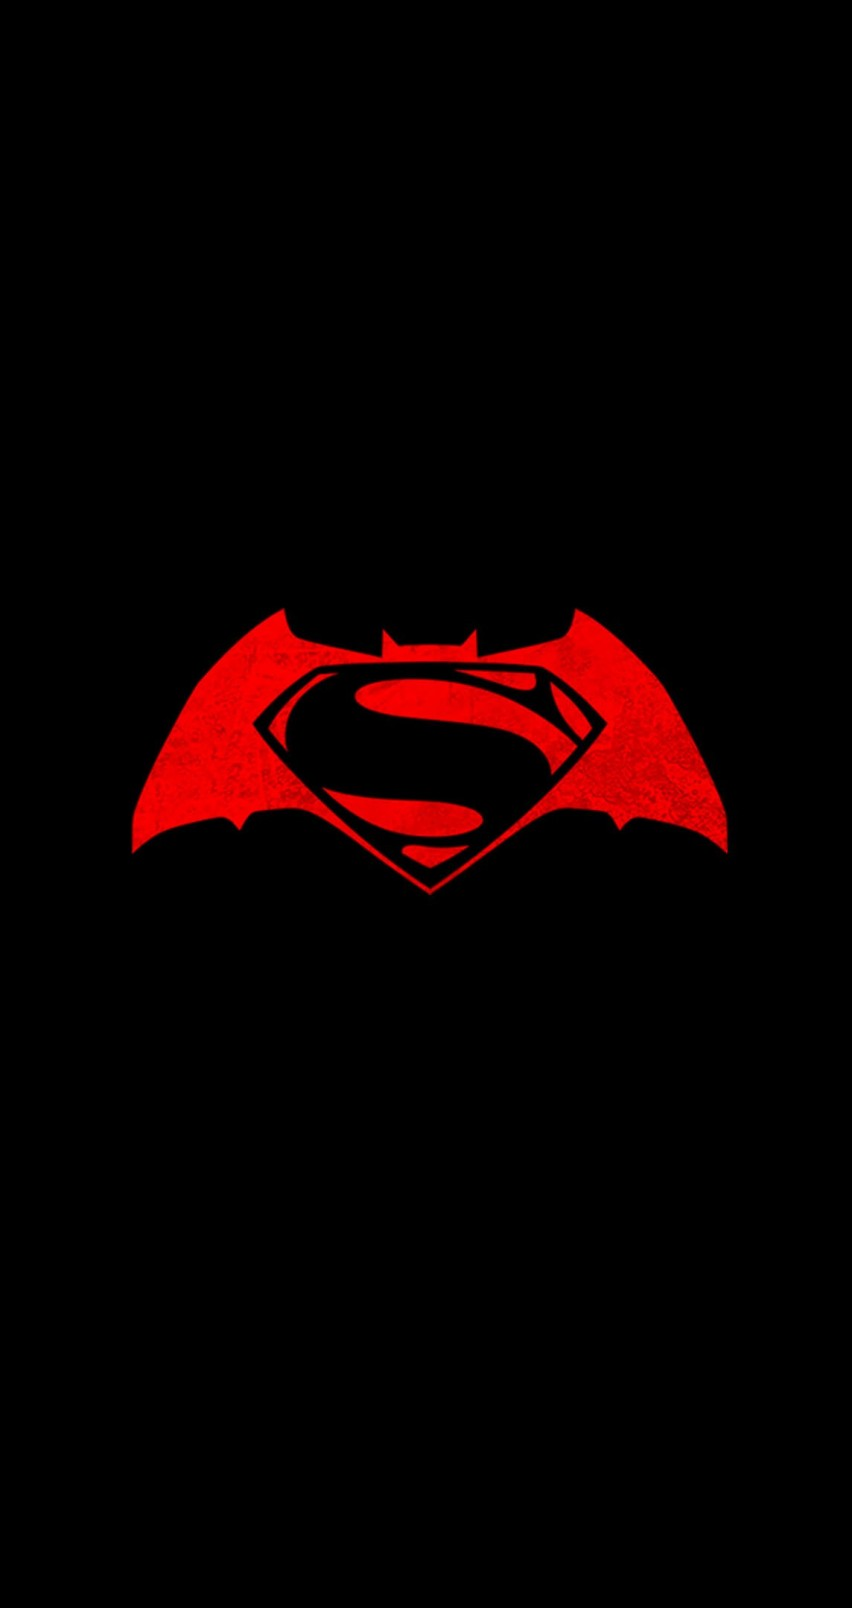 Batman v Superman logo Wallpaper for Apple iPhone 6 / 6s